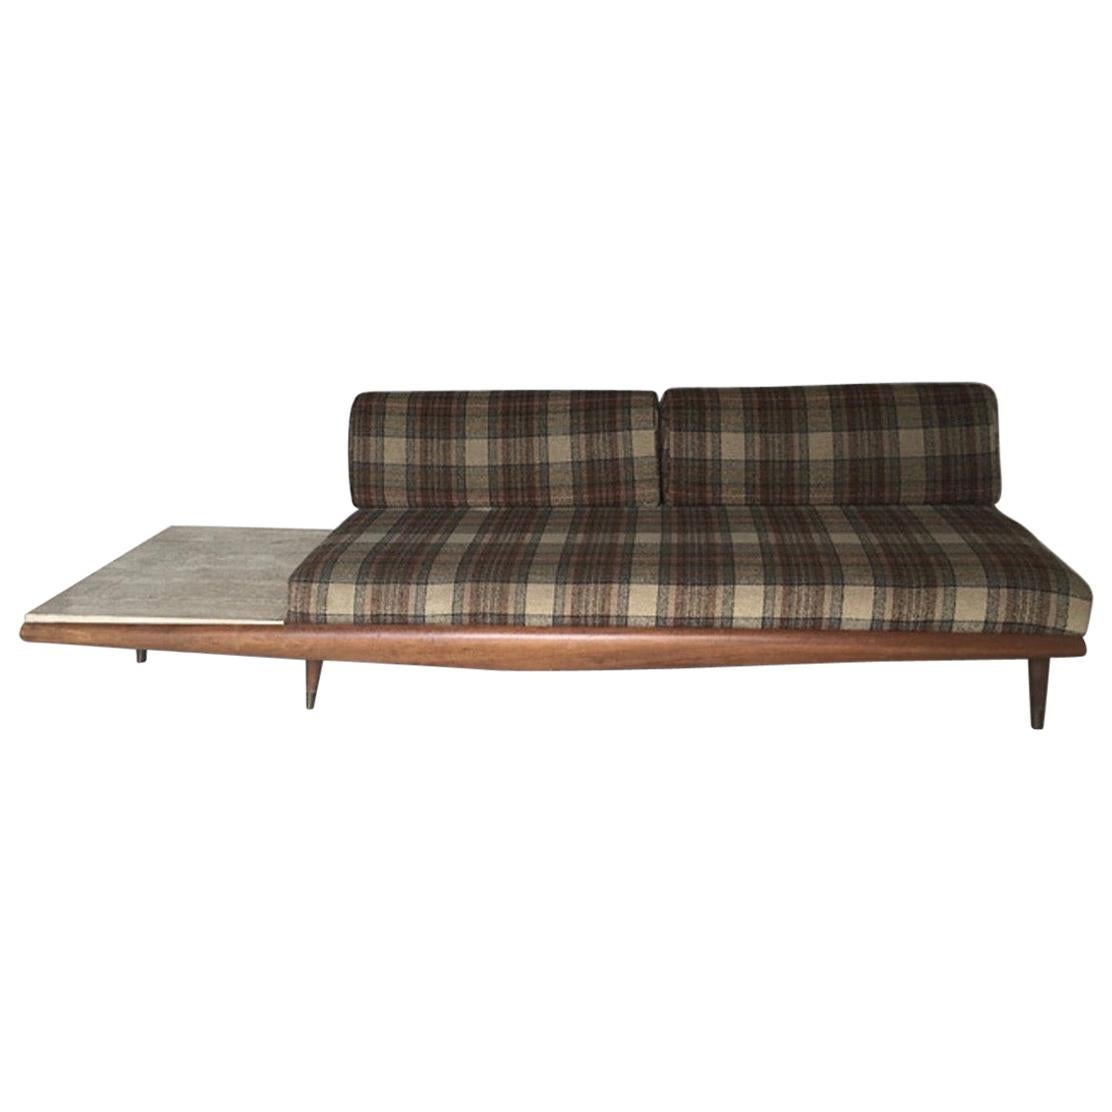 Midcentury Adrian Pearsall for Craft Associates Sofa Daybed Model 615